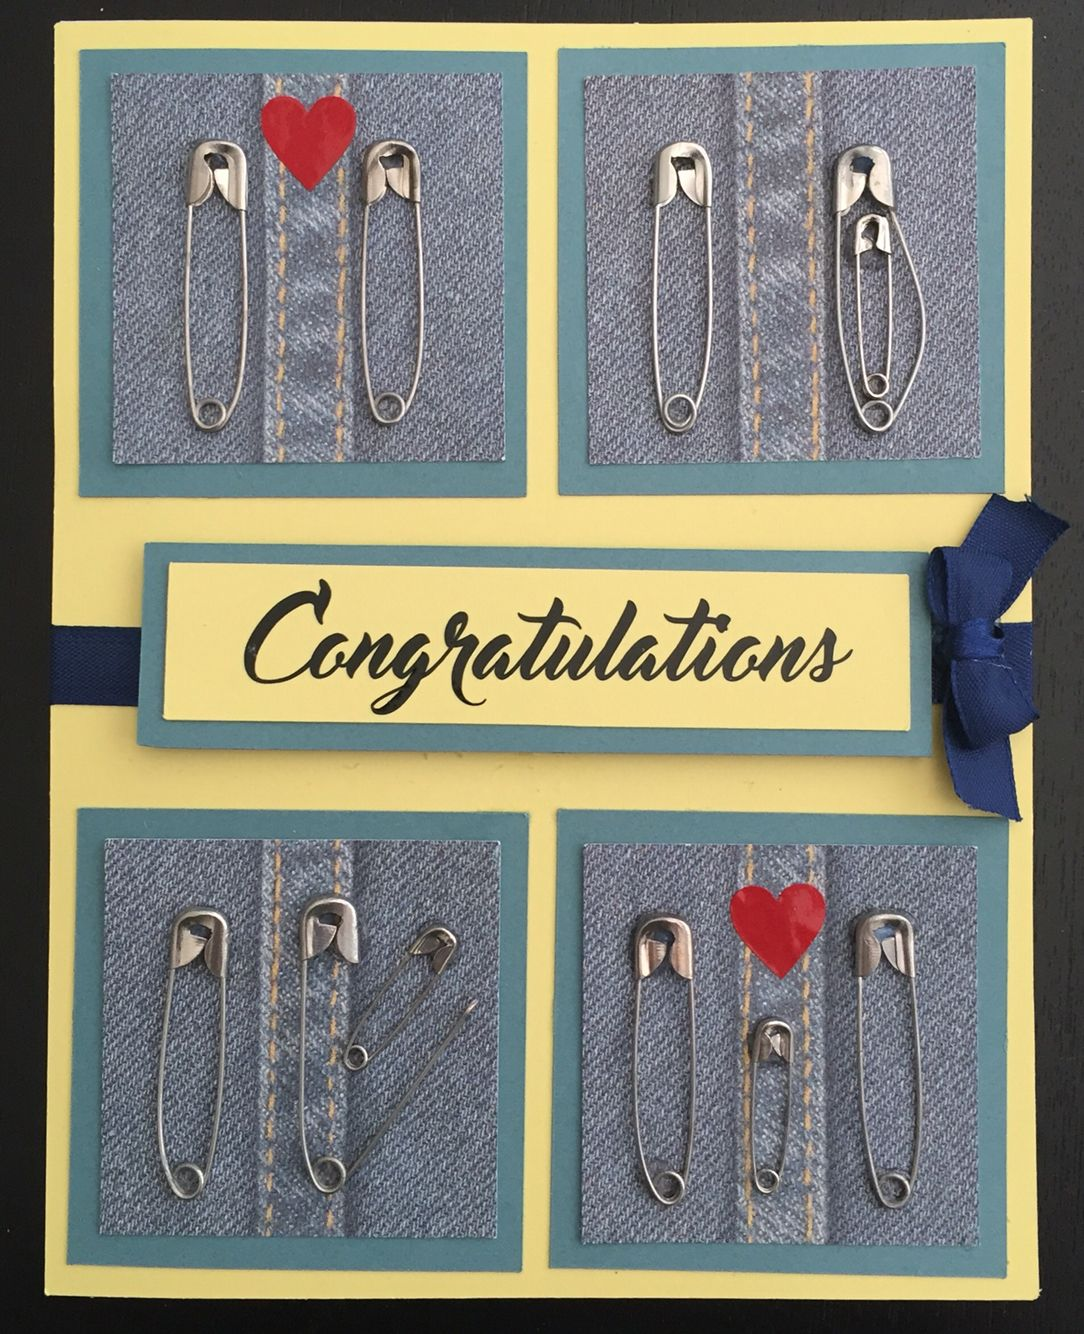 Baby Congratulation Card Using Safety Pins